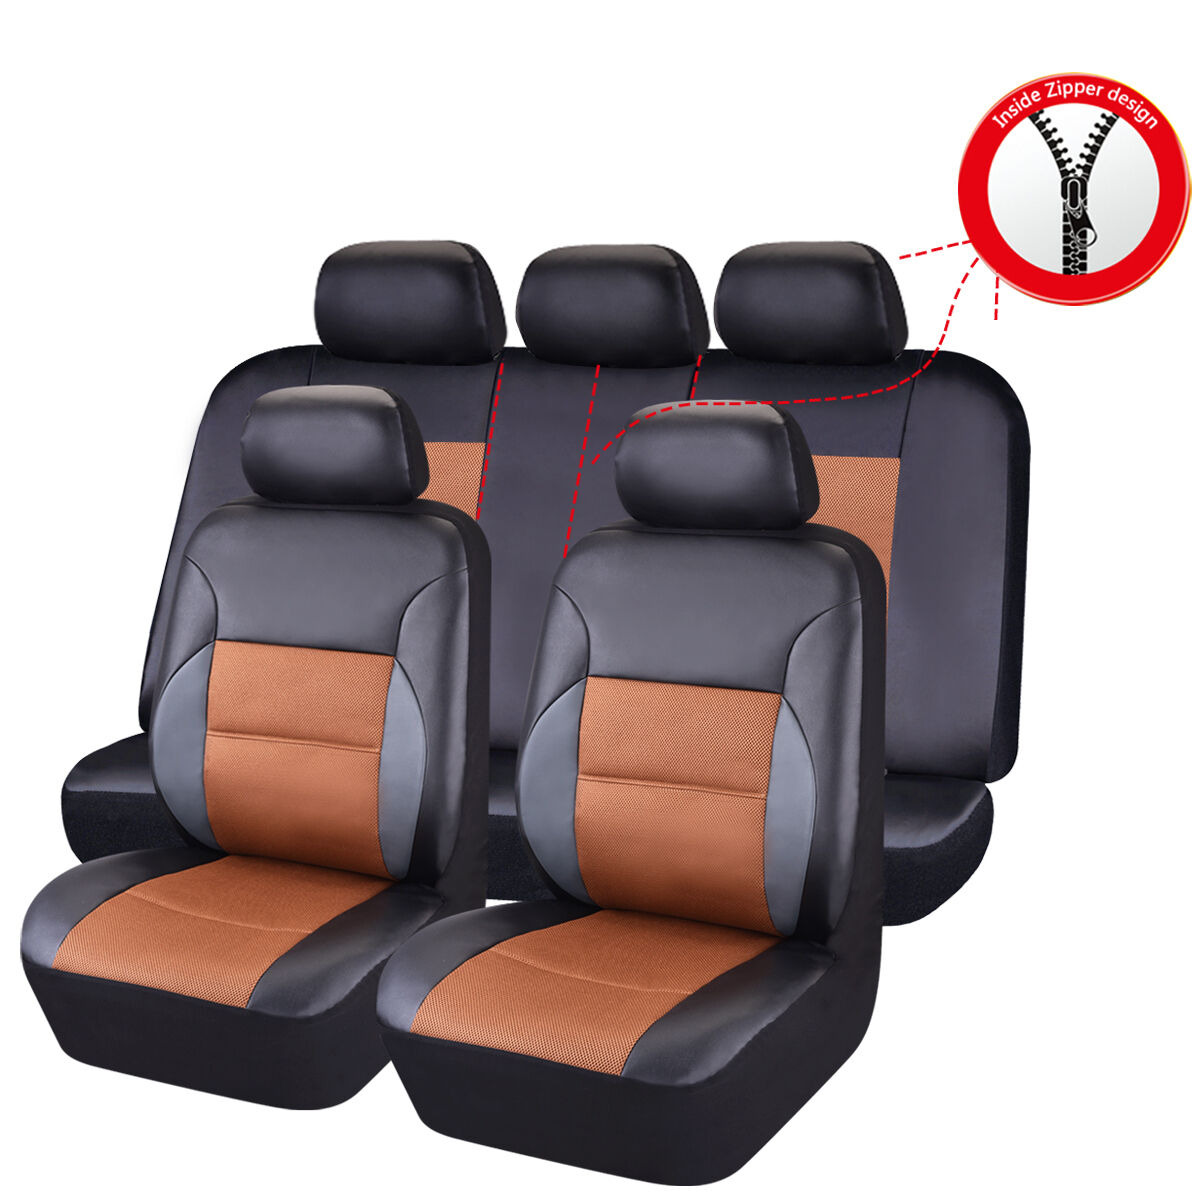 CAR PASS Breathable PU Leather Universal Fit Car Truck Suv